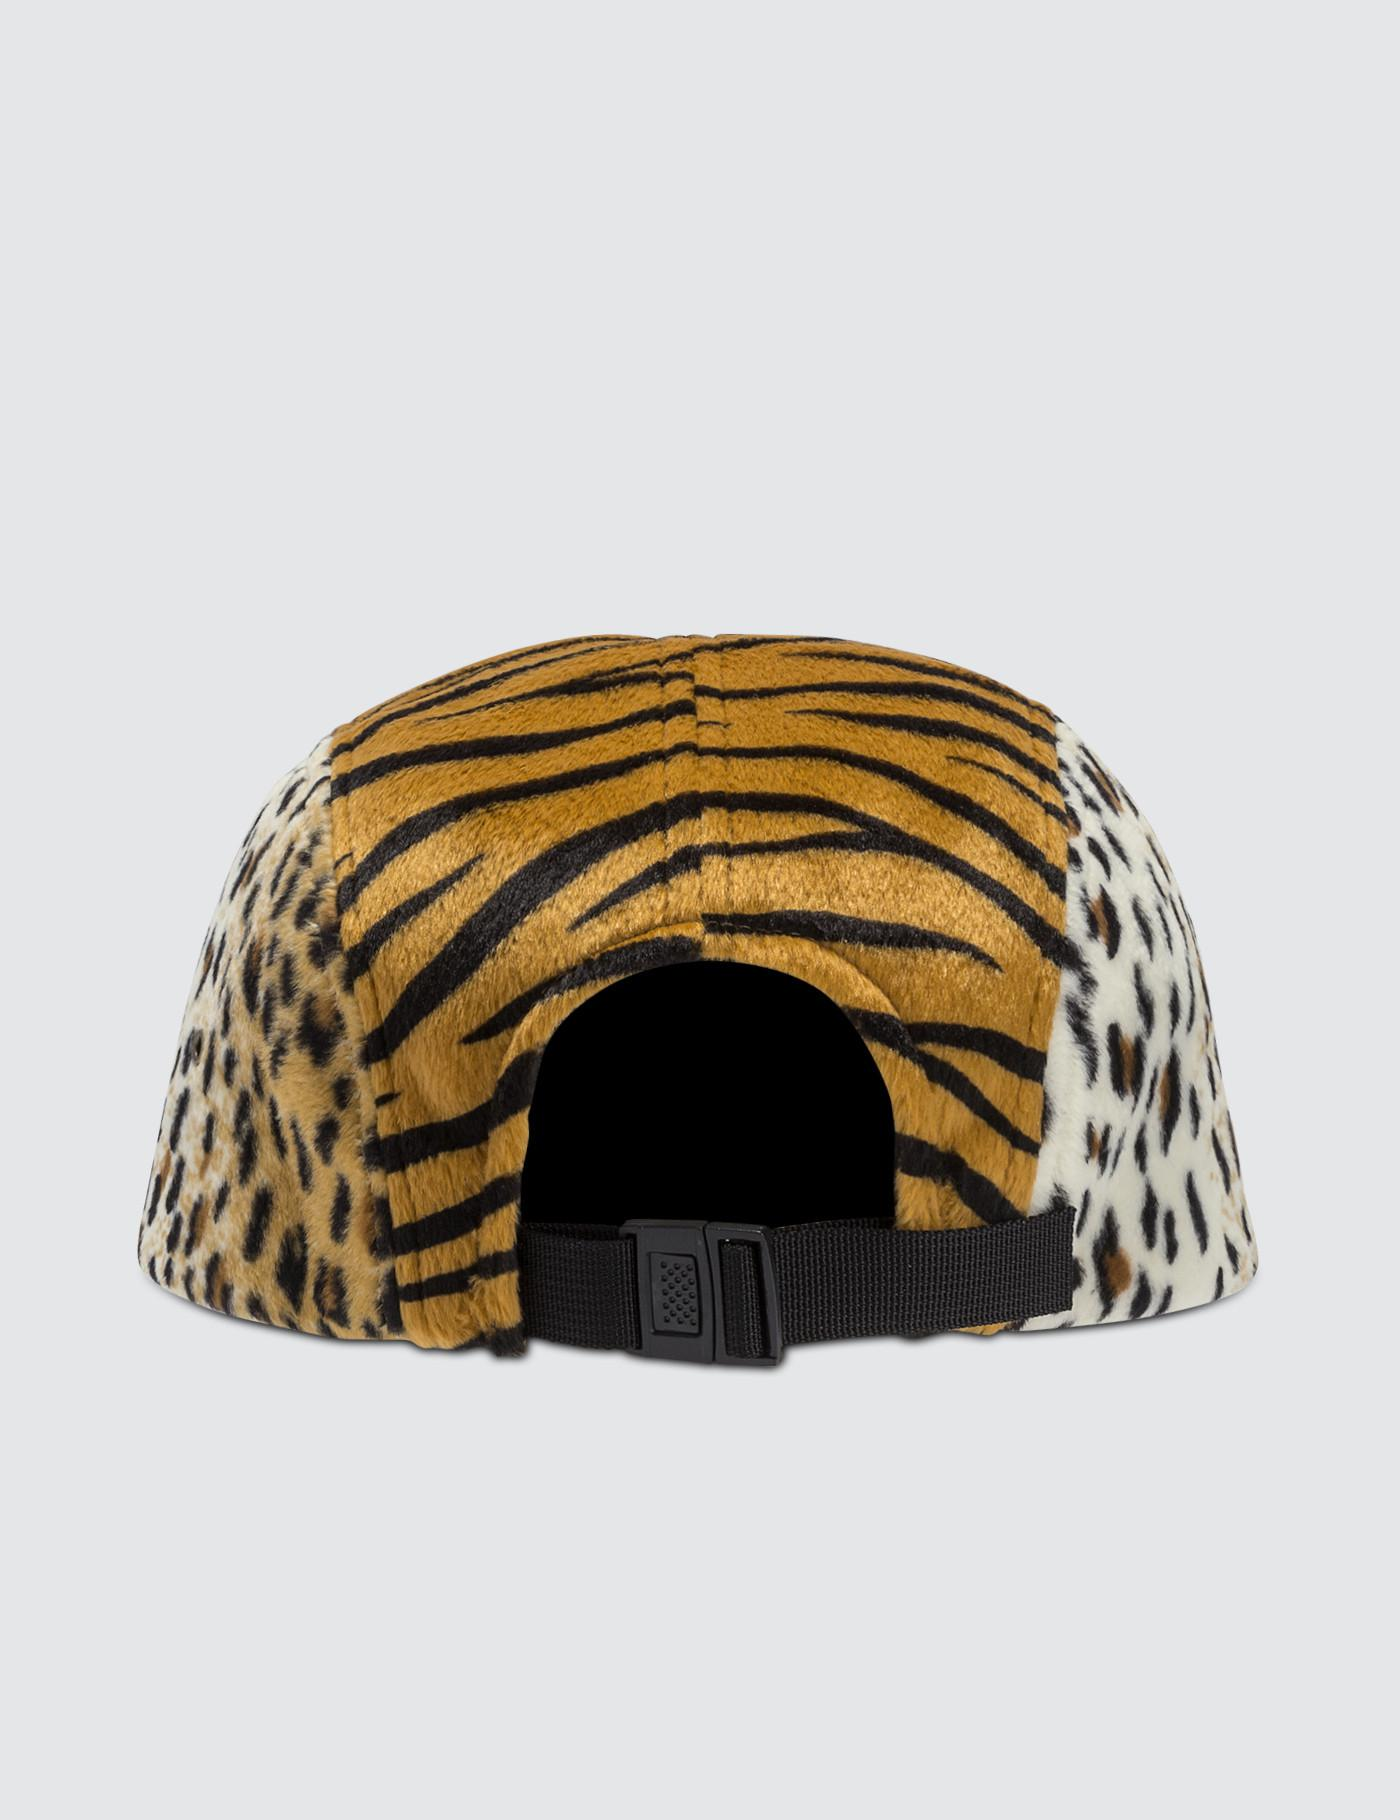 f3bdd4b37d1 Lyst - Atmos Lab Crazy Animal Camp Cap